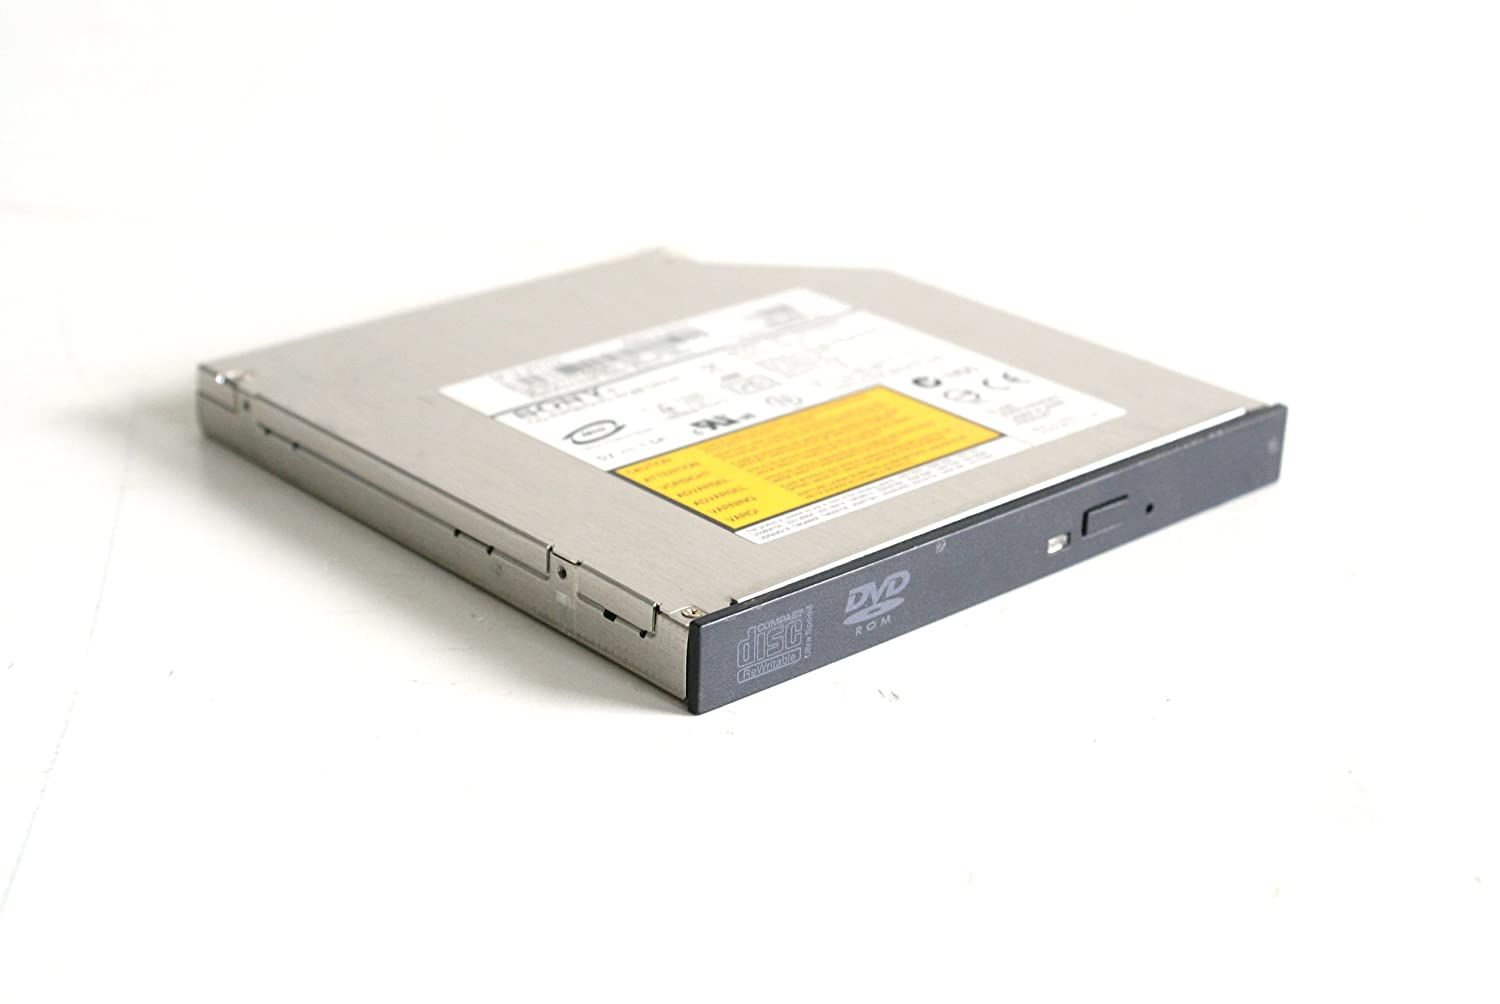 CC773 CC755 Y8533 Dell CD-RW/DVD ROM Combo Optical Drive CRX835E-DC Read DVD: 8x Read CD: 24x Write CD-R: 24x Write CD-RW: 24x For Optiplex GX520, GX620 Dimension 5150C / XPS 200 Small Form Factor (SFF) Systems cc773 cc755 y8533 dell cd rw dvd rom combo optical drive crx835e dc read dvd 8x read cd 24x write cd r 24x write cd rw 24x for optiplex gx520 gx620 dimension 5150c xps 200 small form factor sff systems